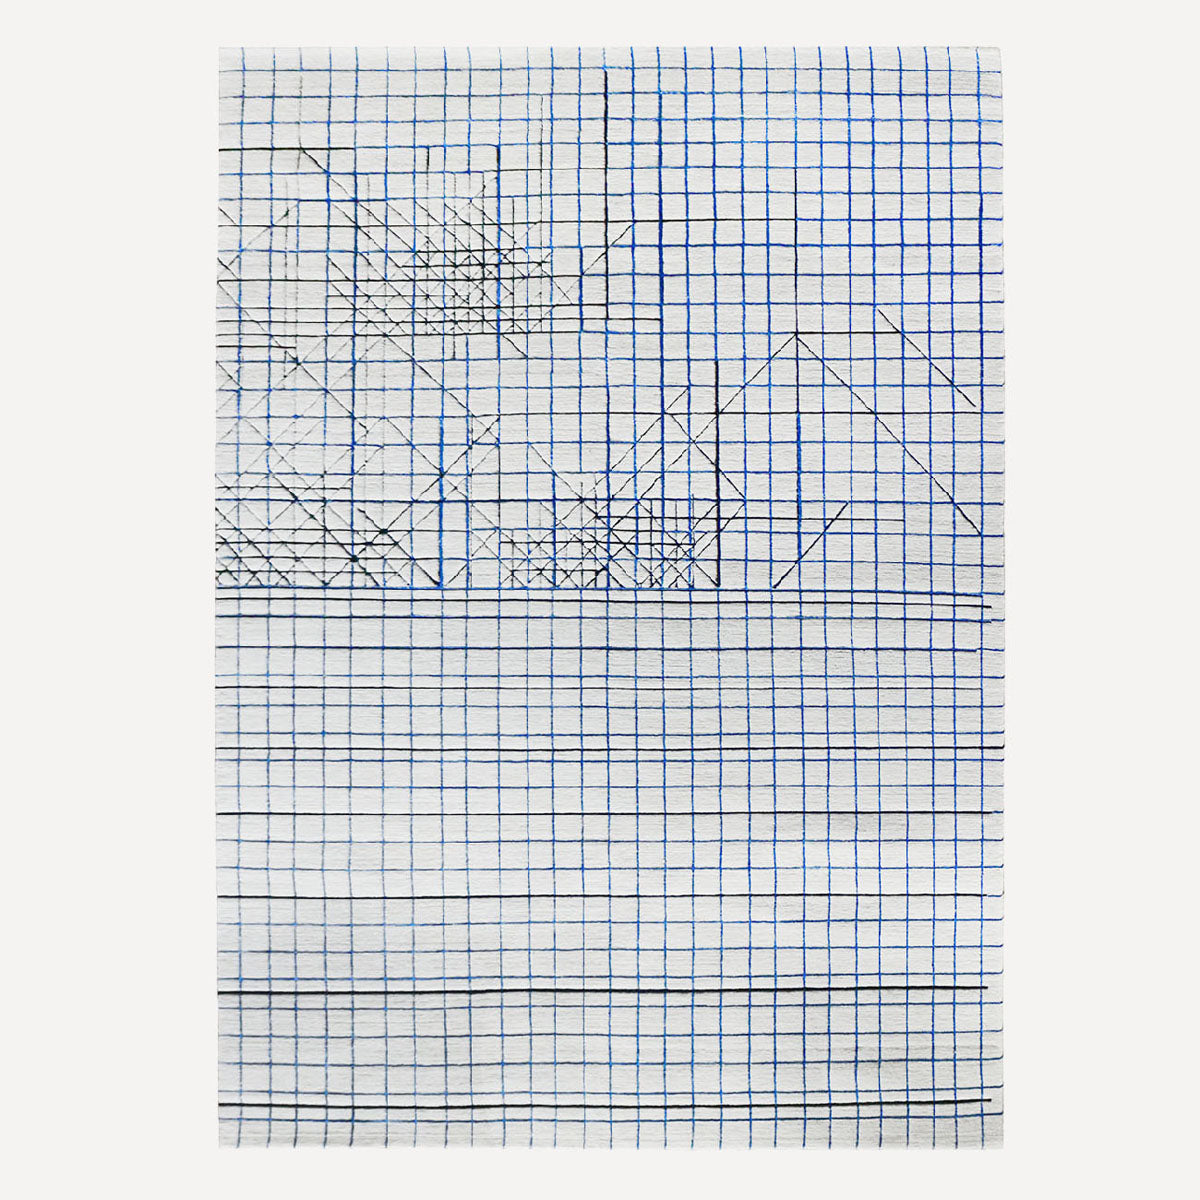 WILHELM SASNAL, UNTITLED, 2014